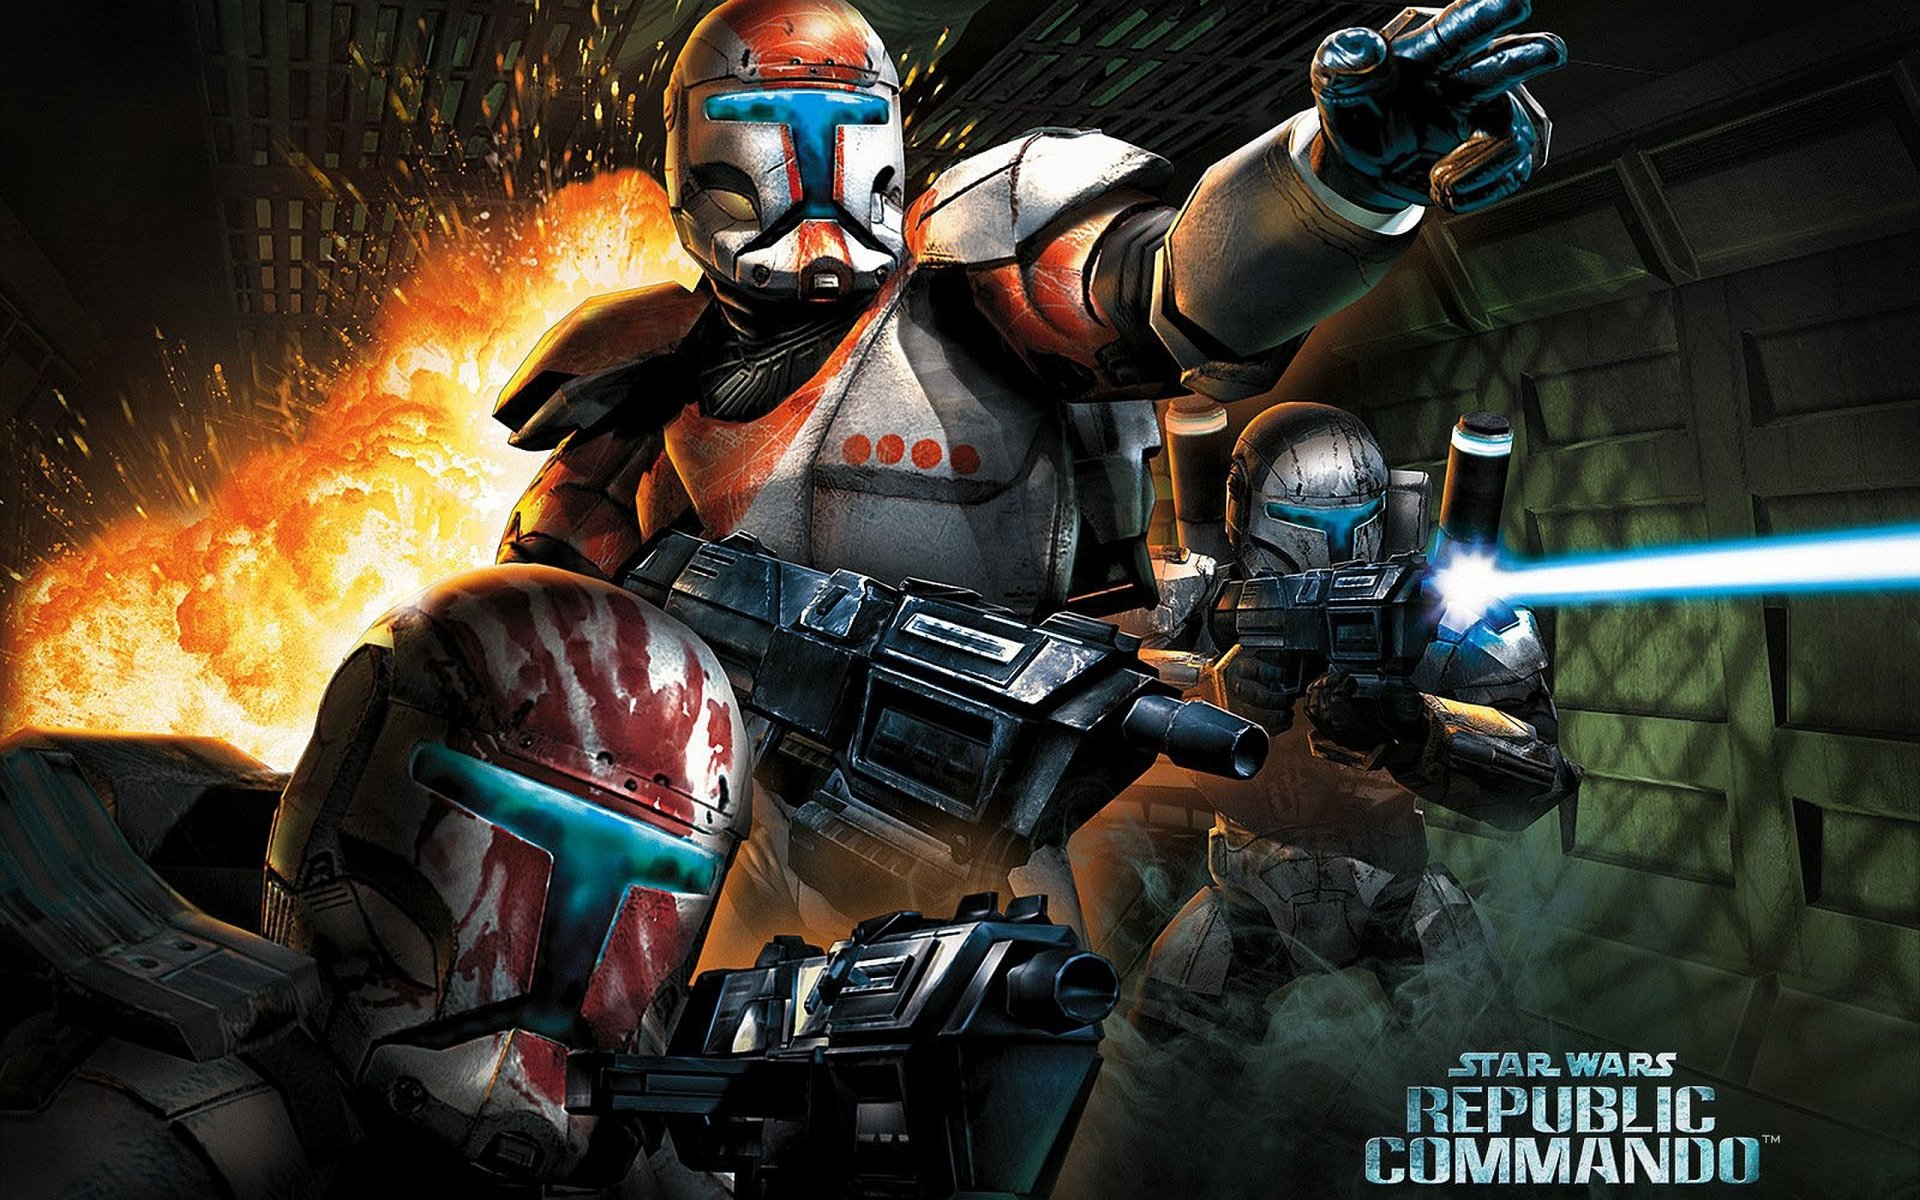 Commando 2 Wallpaper: Star Wars: Republic Commando Full HD Wallpaper And